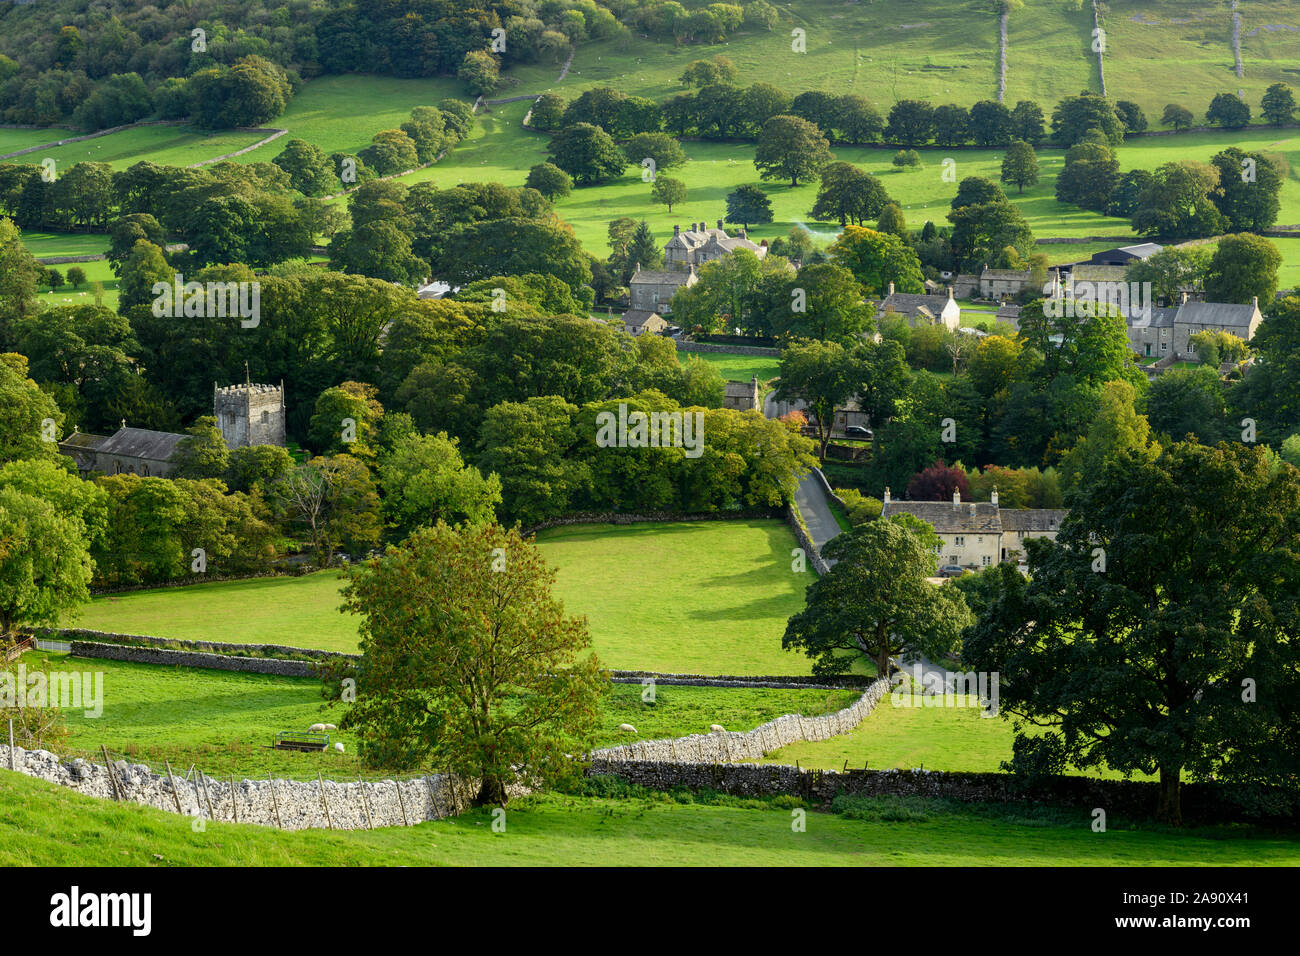 Summer evening sunlight on picturesque Dales village (church & houses) nestling in valley under upland hills - Arncliffe, North Yorkshire, England, UK Stock Photo